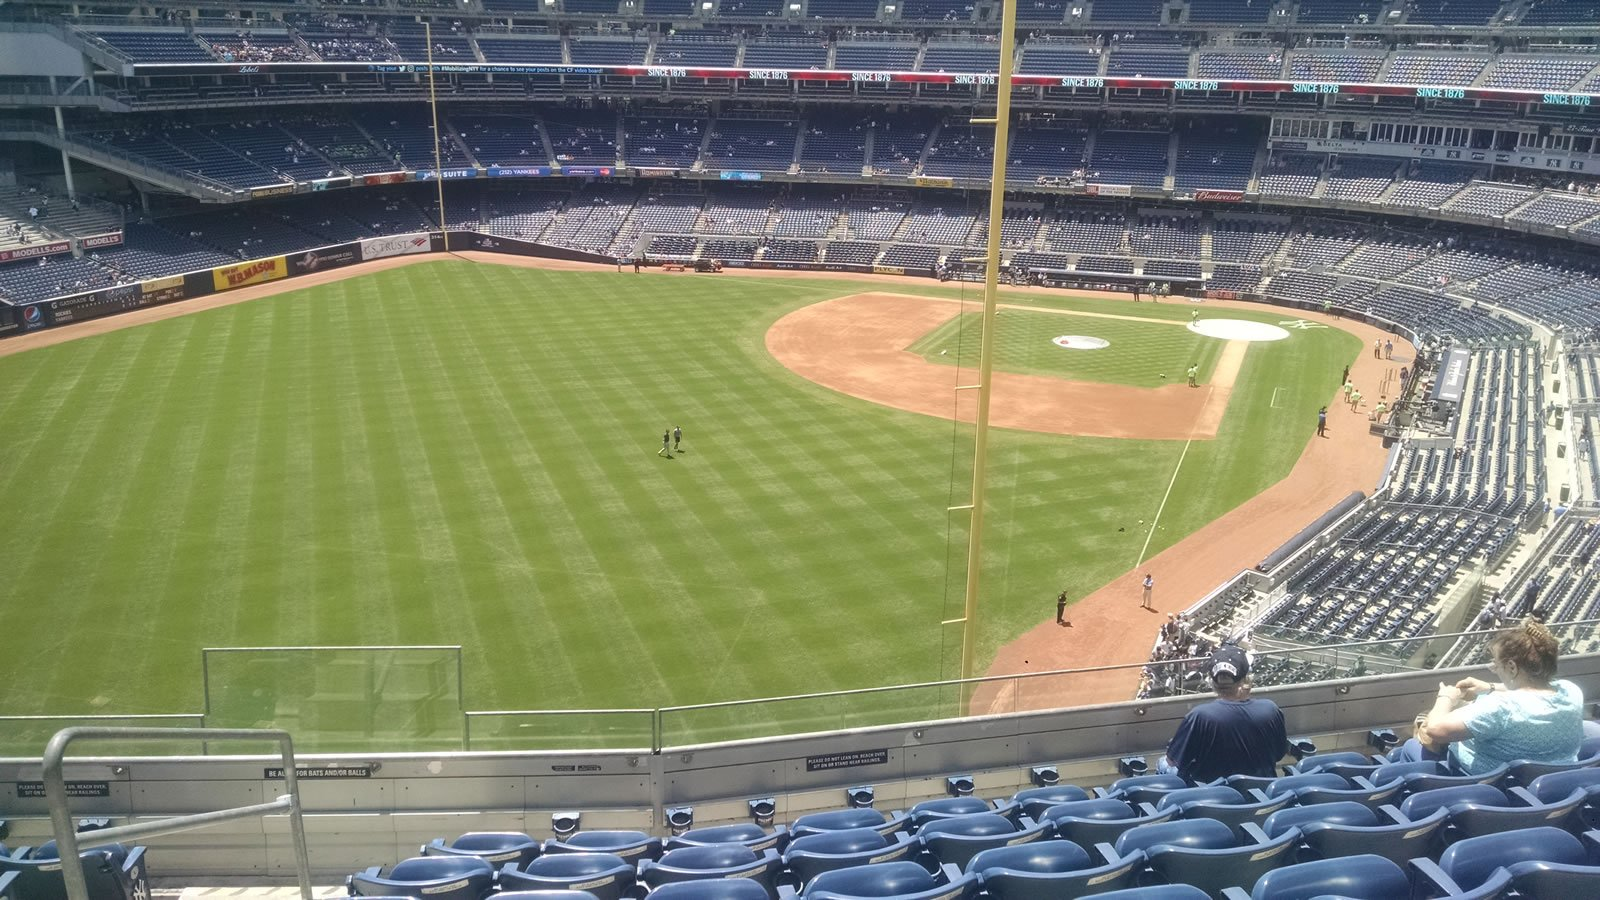 New York Yankees Seat View for Yankee Stadium Section 332B, Row 7, Seat 21